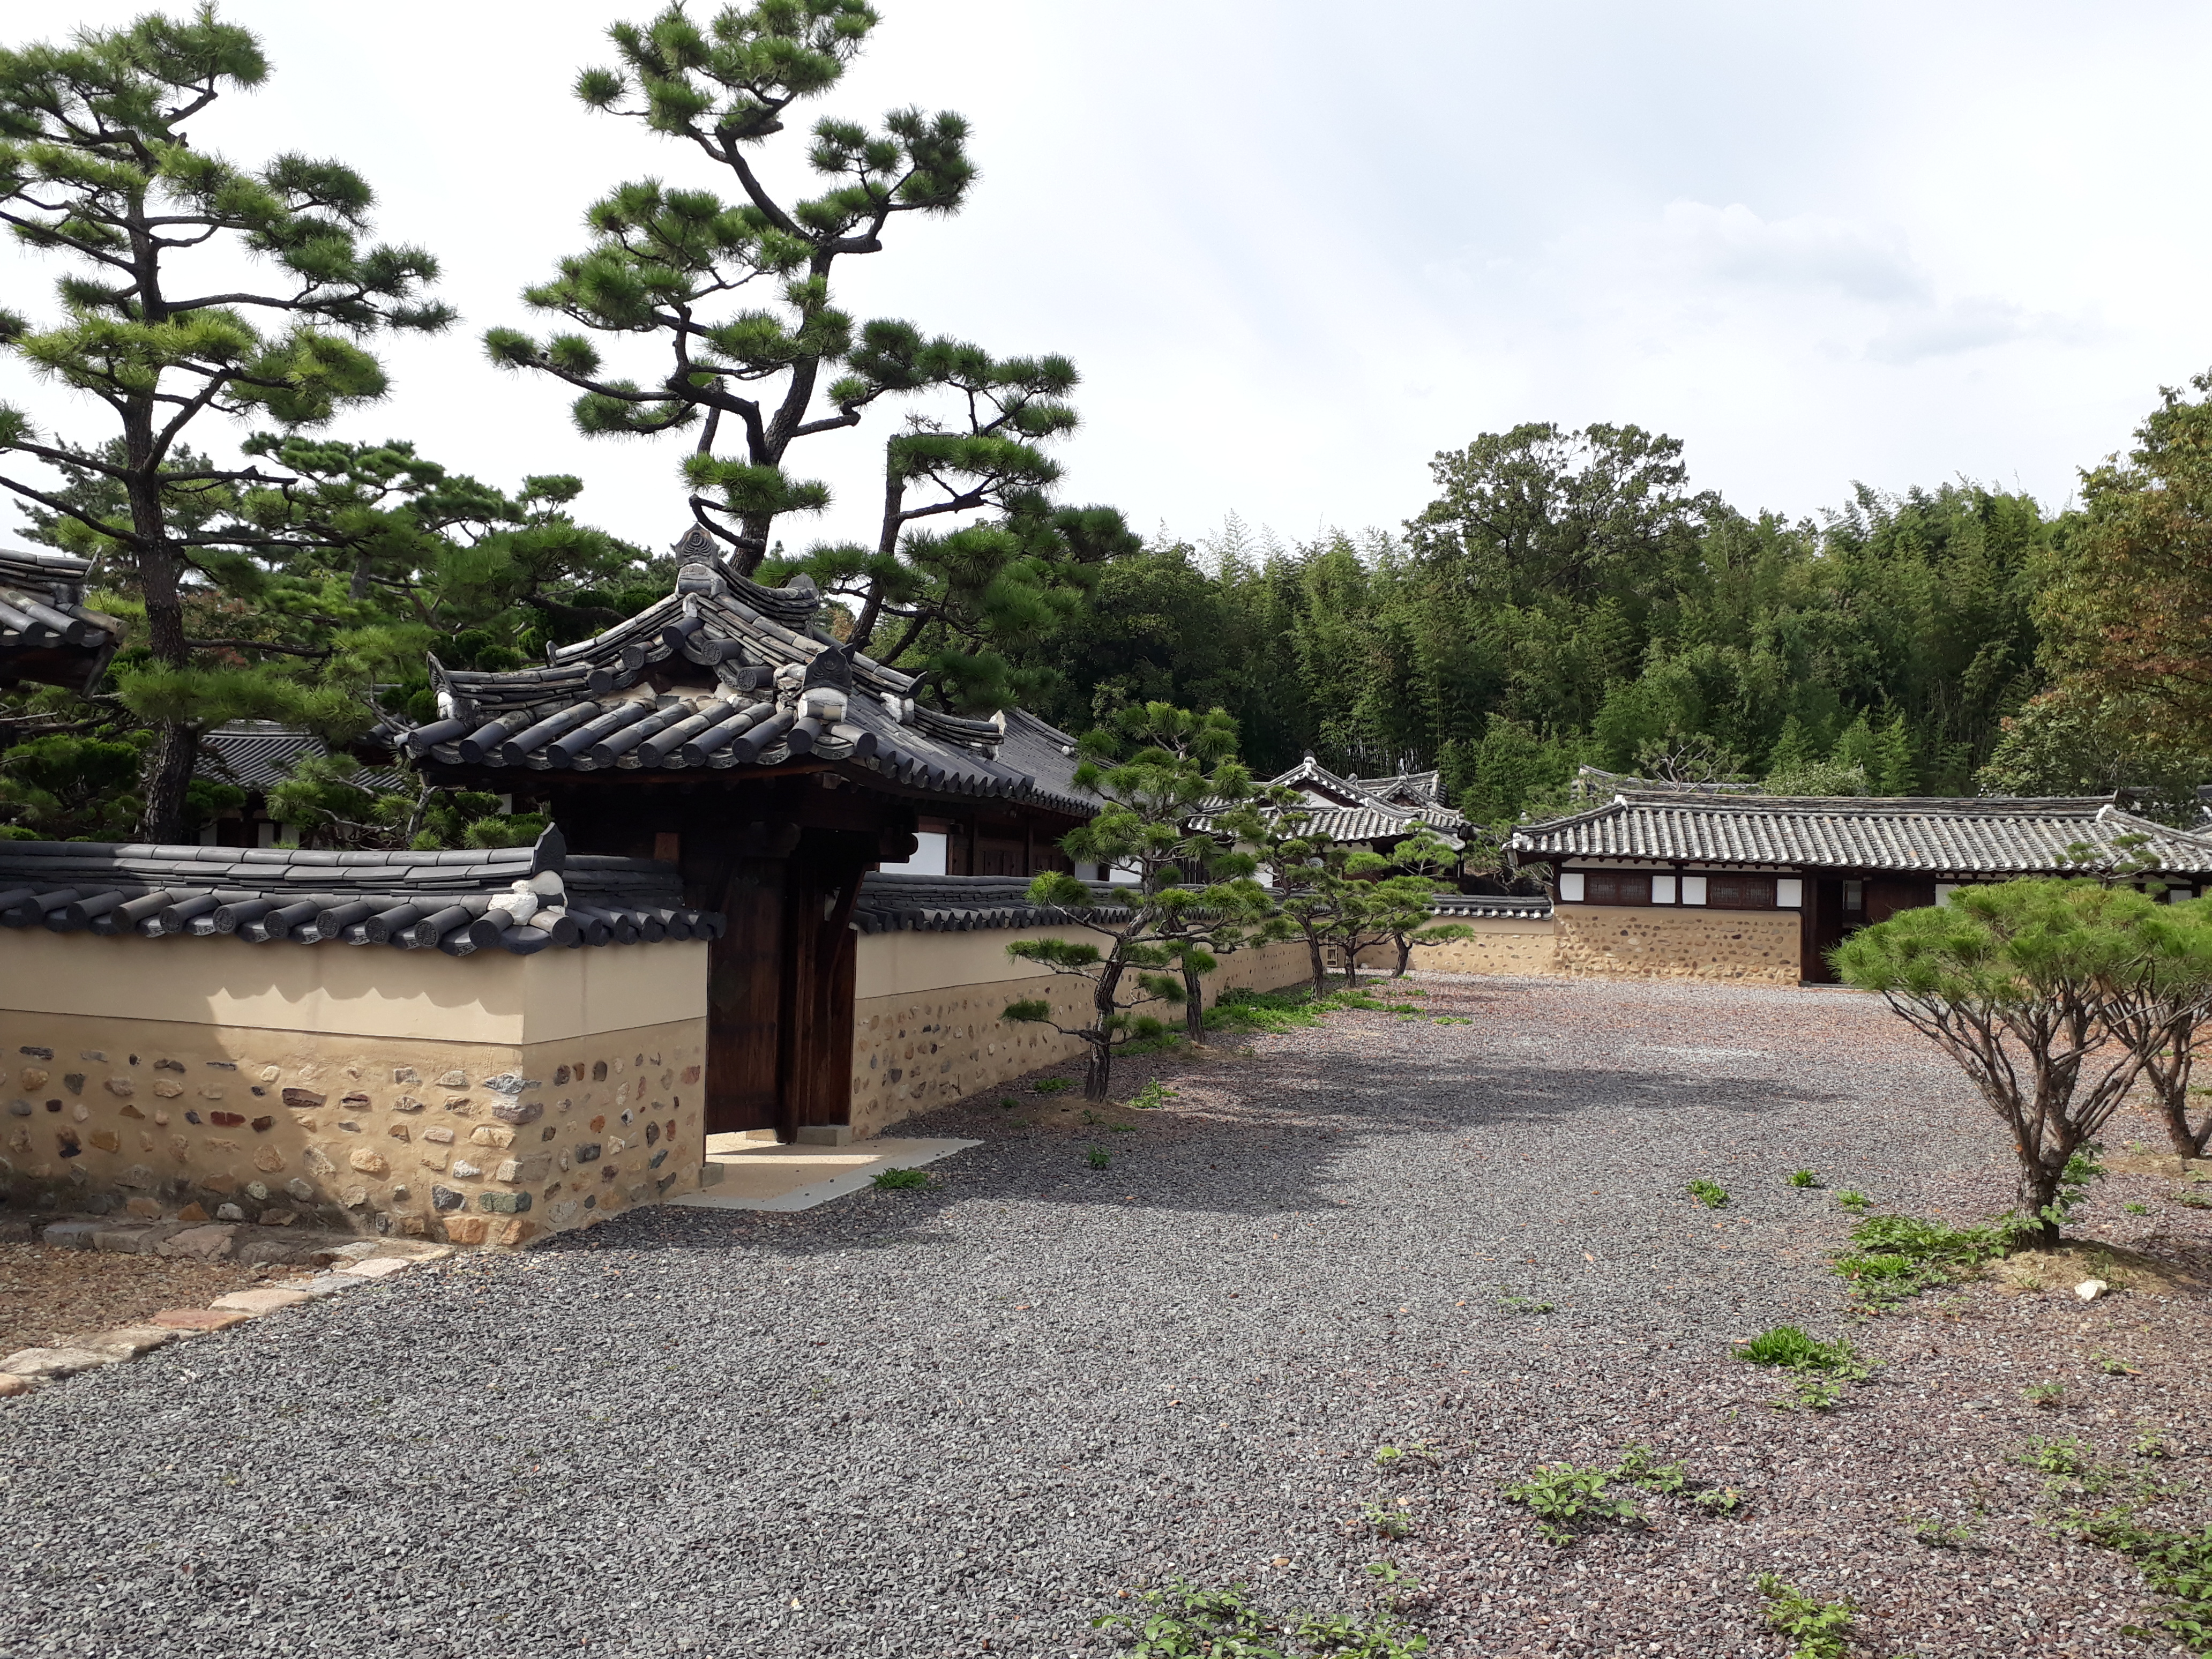 Free download high resolution image - free image free photo free stock image public domain picture -House of the Seong Clan in Seok-ri Changnyeong Korea